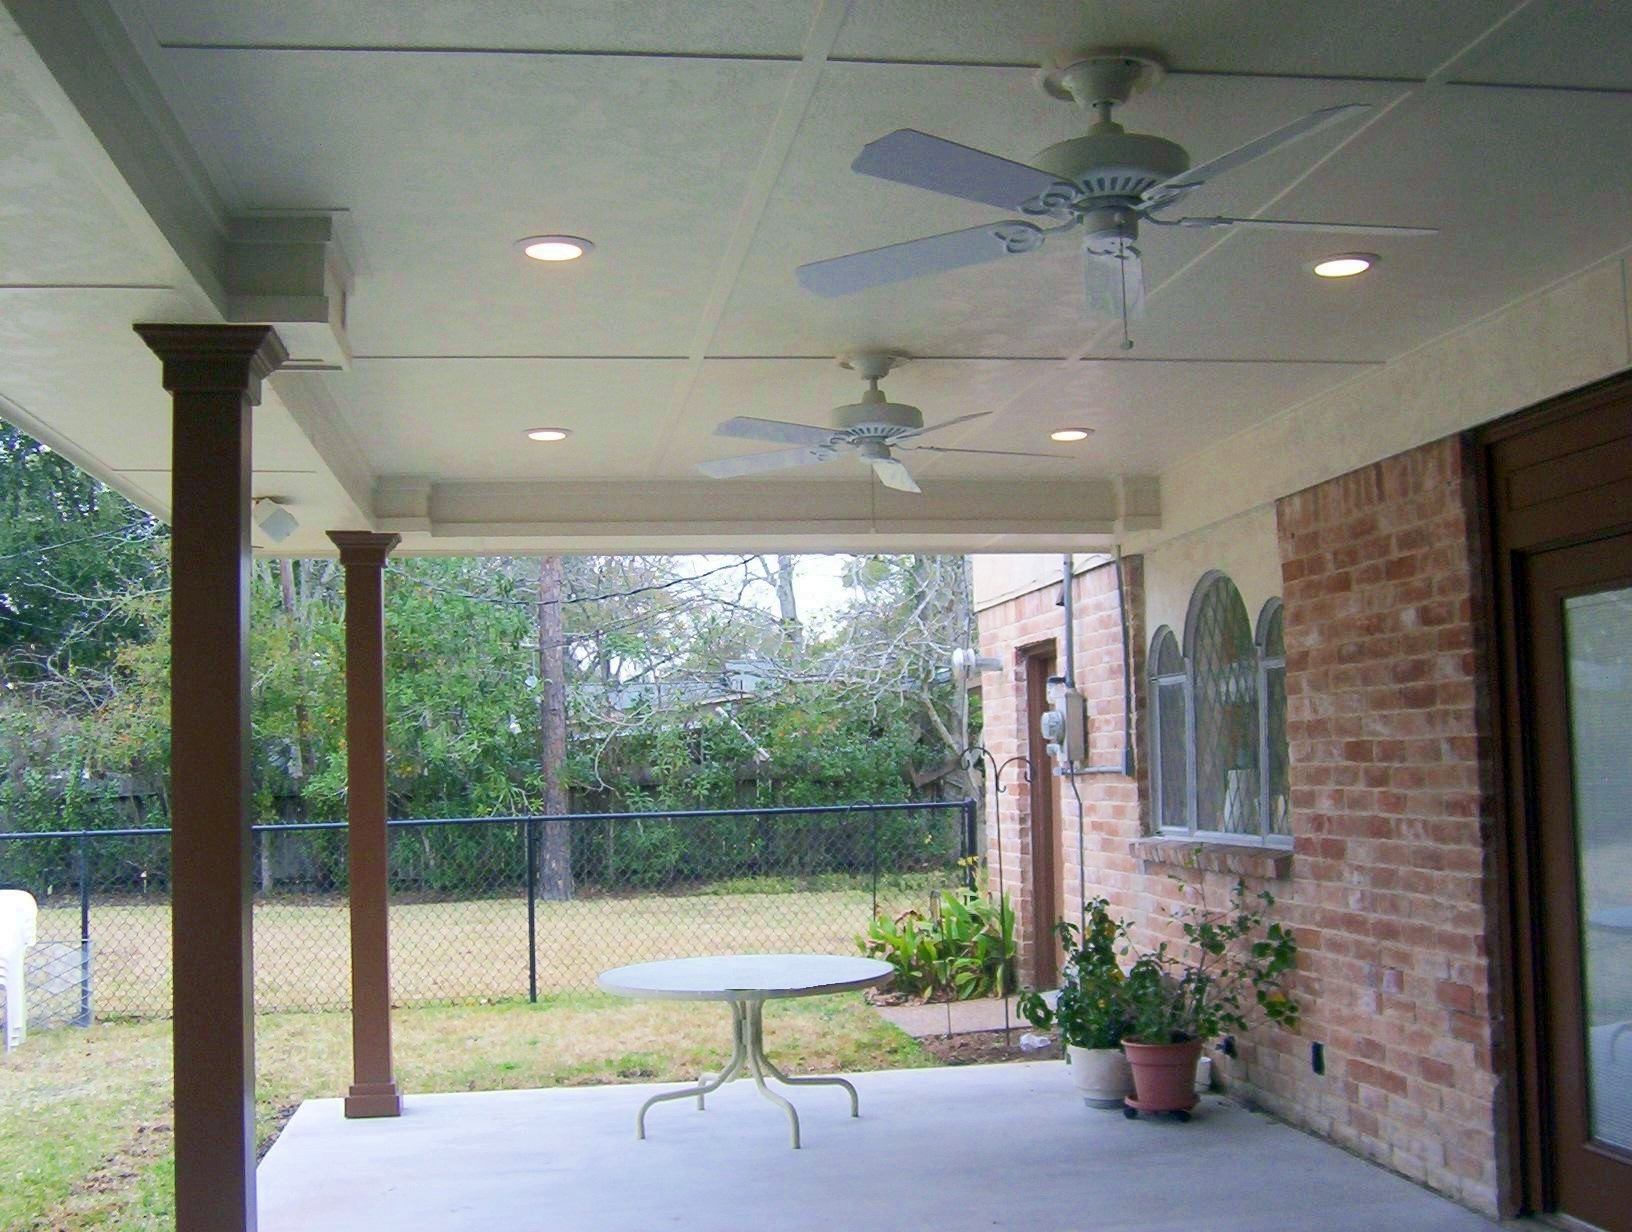 Outdoor Deck Ceiling Lights Intended For Most Popular Patio Outdoor Ceiling Fan With Light (View 10 of 20)